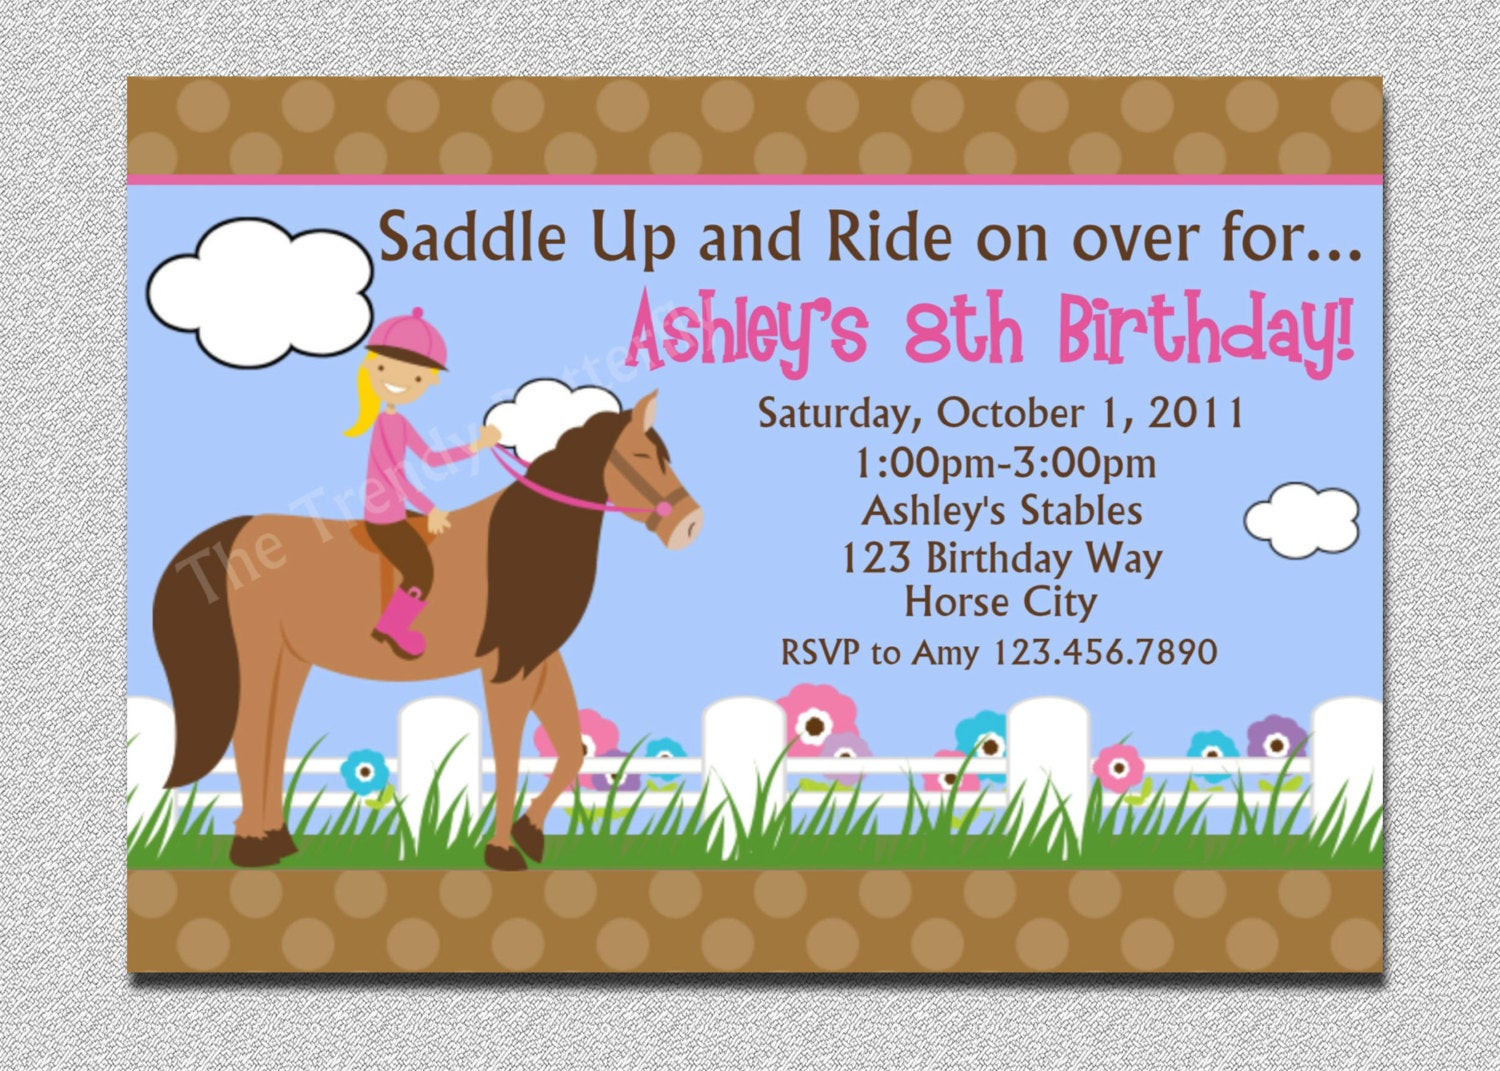 Best ideas about Horse Riding Birthday Party . Save or Pin Horseback Riding Birthday Invitation Western Horse Birthday Now.